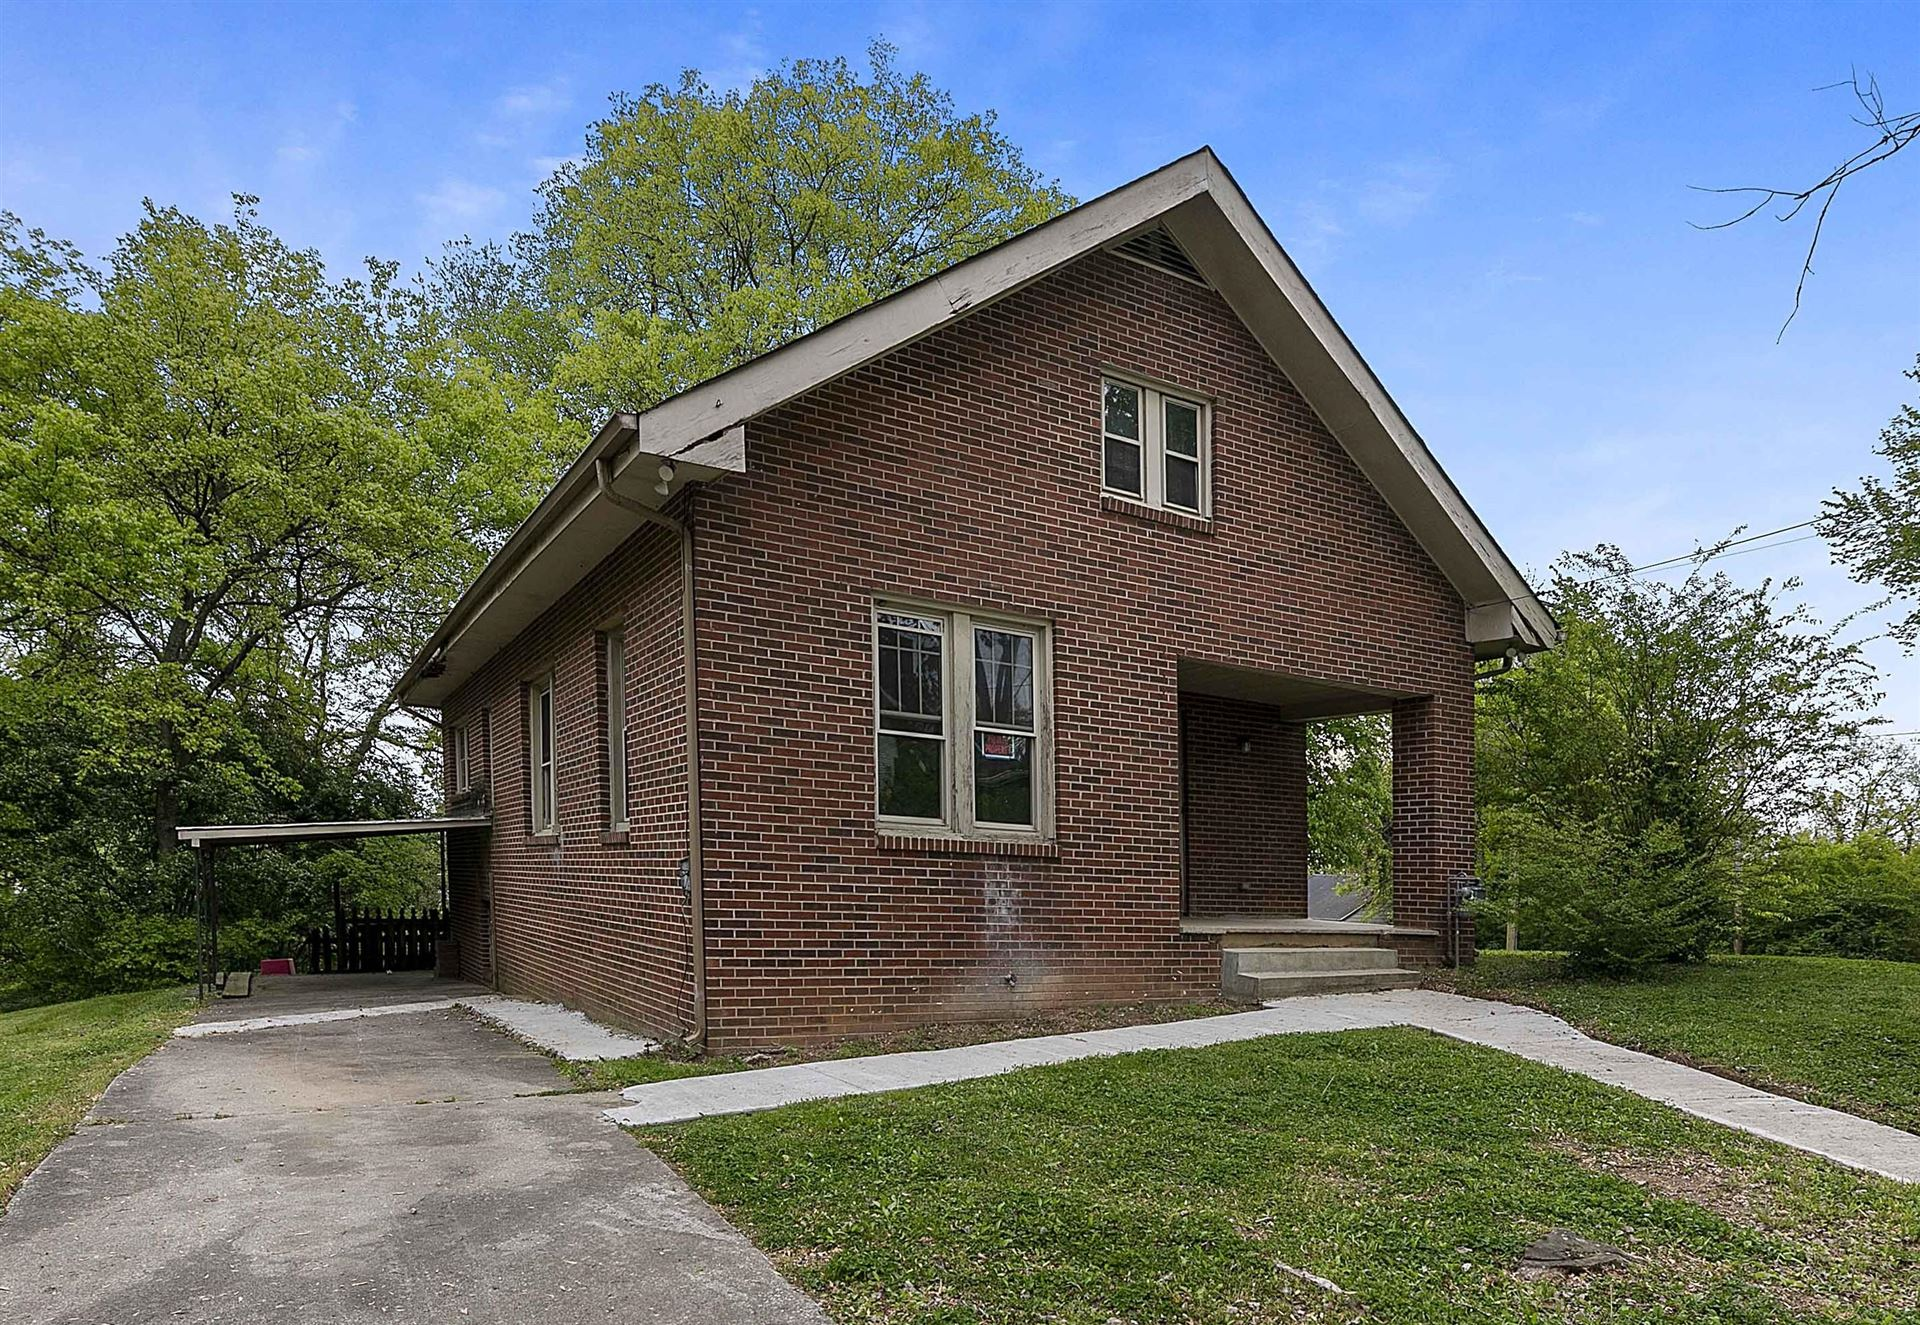 410 Surrey Rd, Knoxville, TN 37915 - MLS#: 1148538